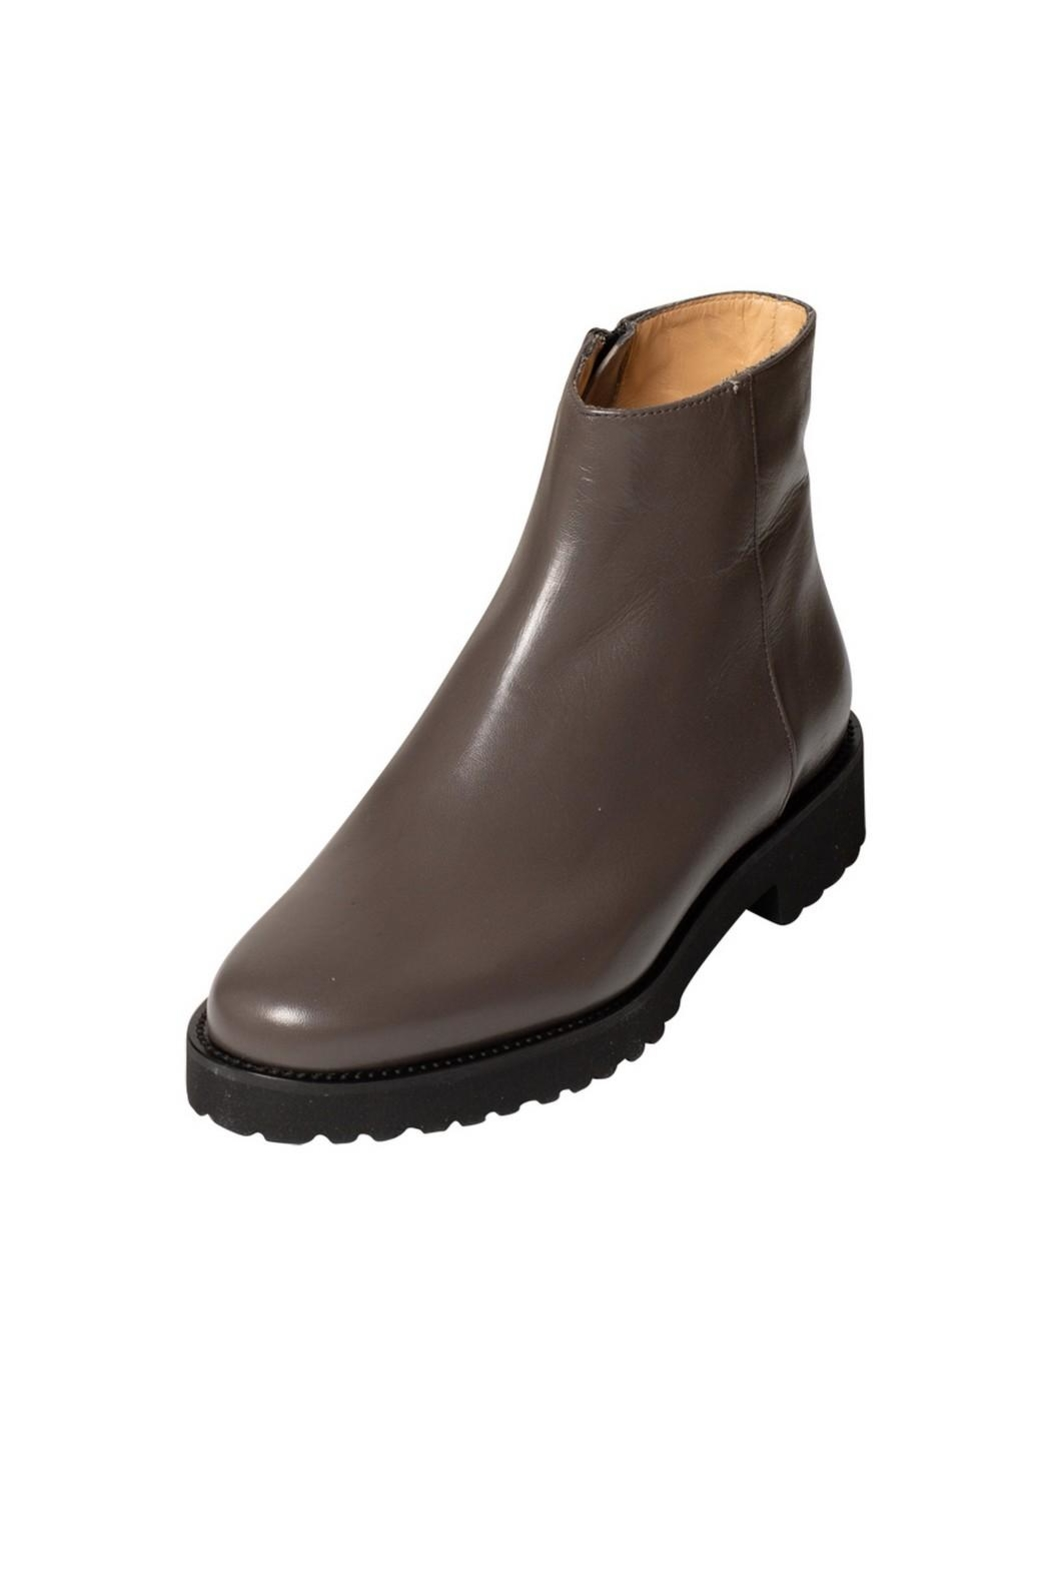 Pascucci Grey Leather Ankle-Boots - Front Full Image